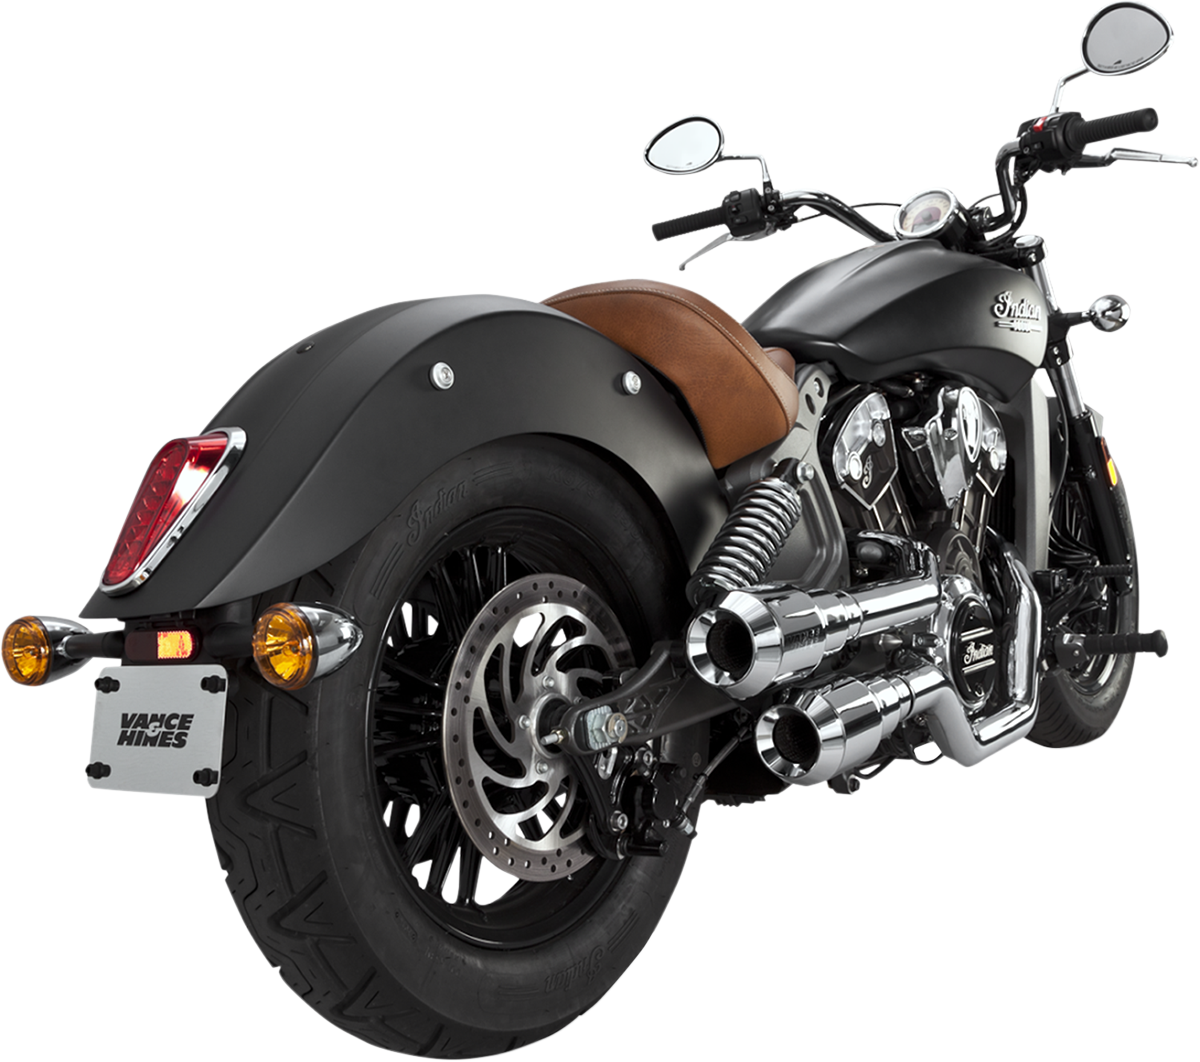 Vance & Hines Chrome Staggered Grenade 2-2 Exhaust for 15-16 Indian Scout